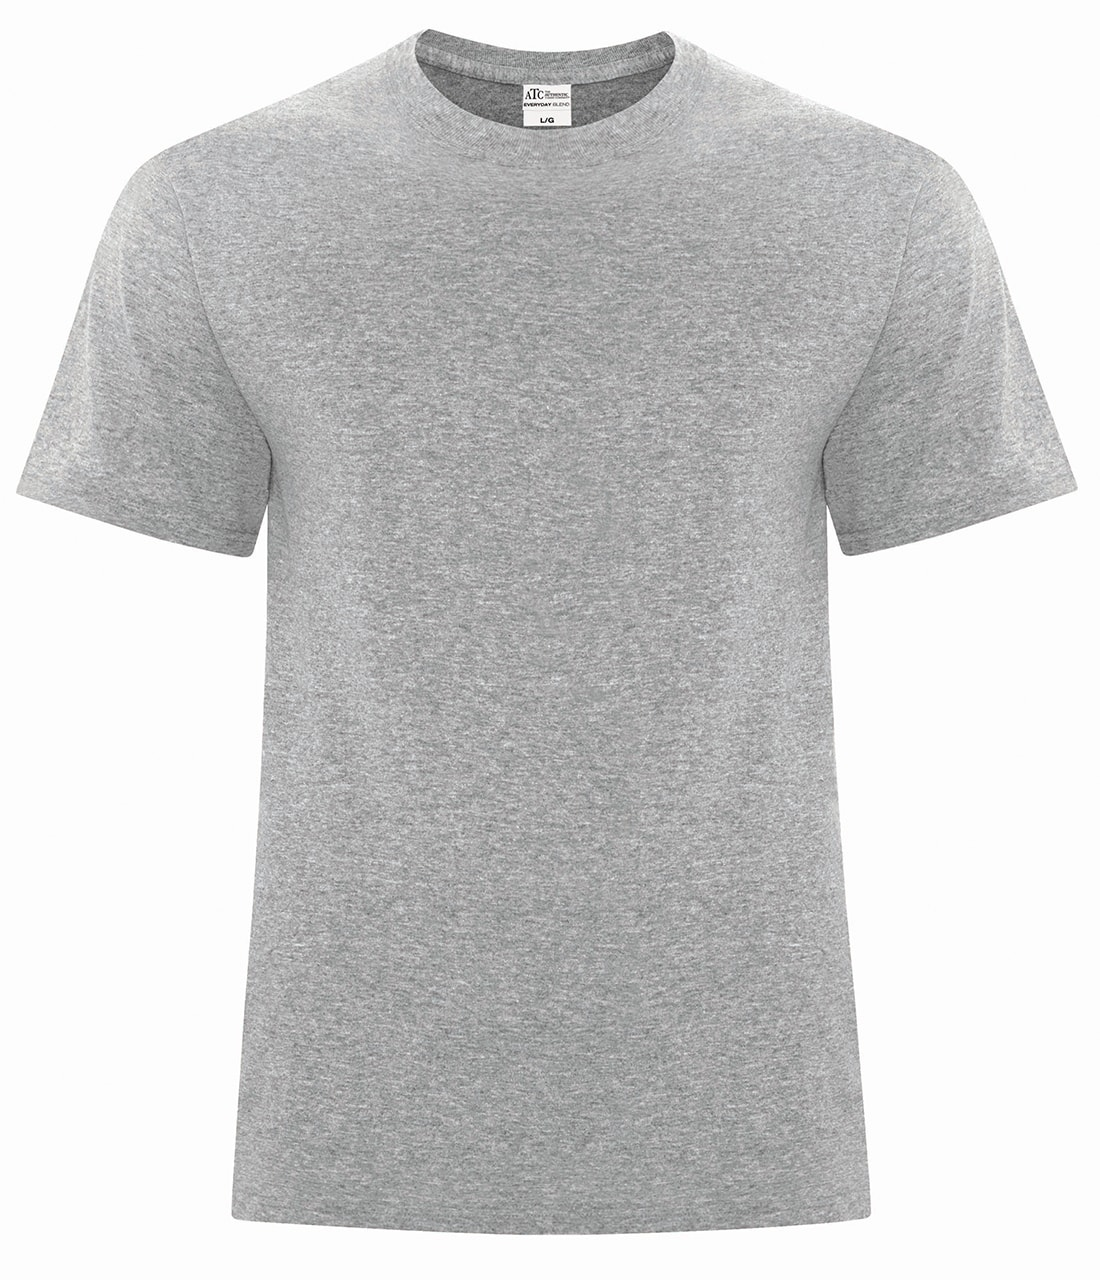 Picture of ATC Everyday Cotton Blend Tee